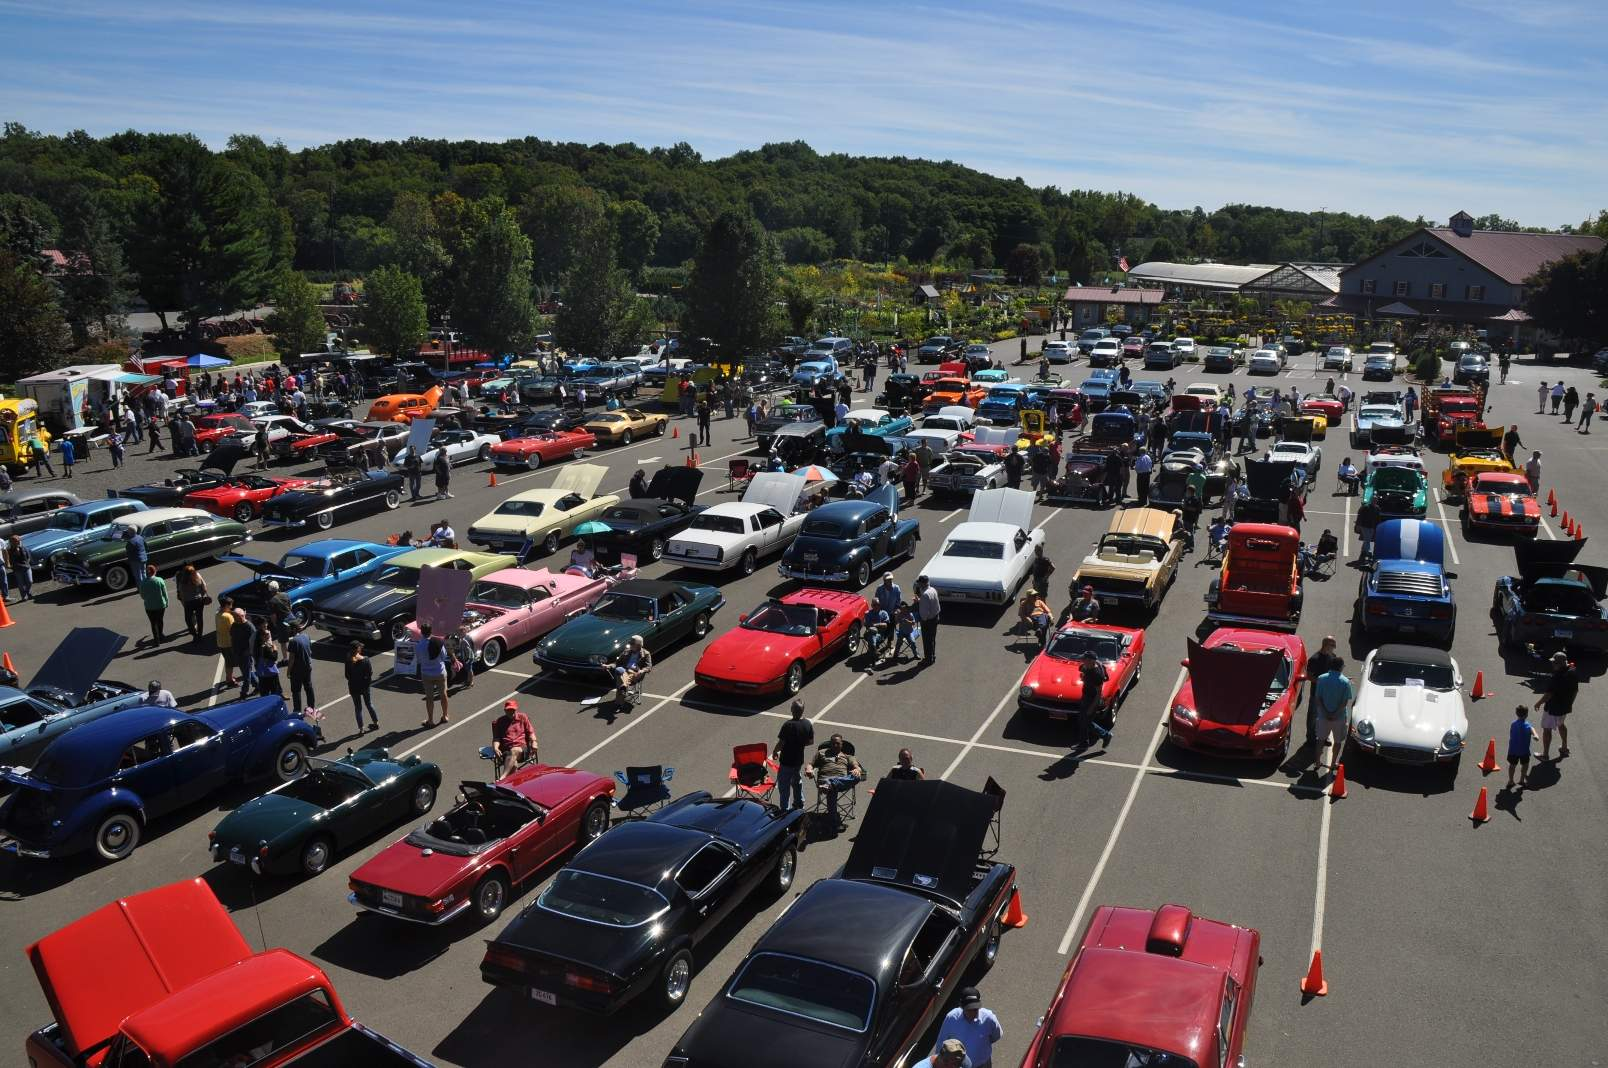 Rotary Cars Benefit U.S. Vets